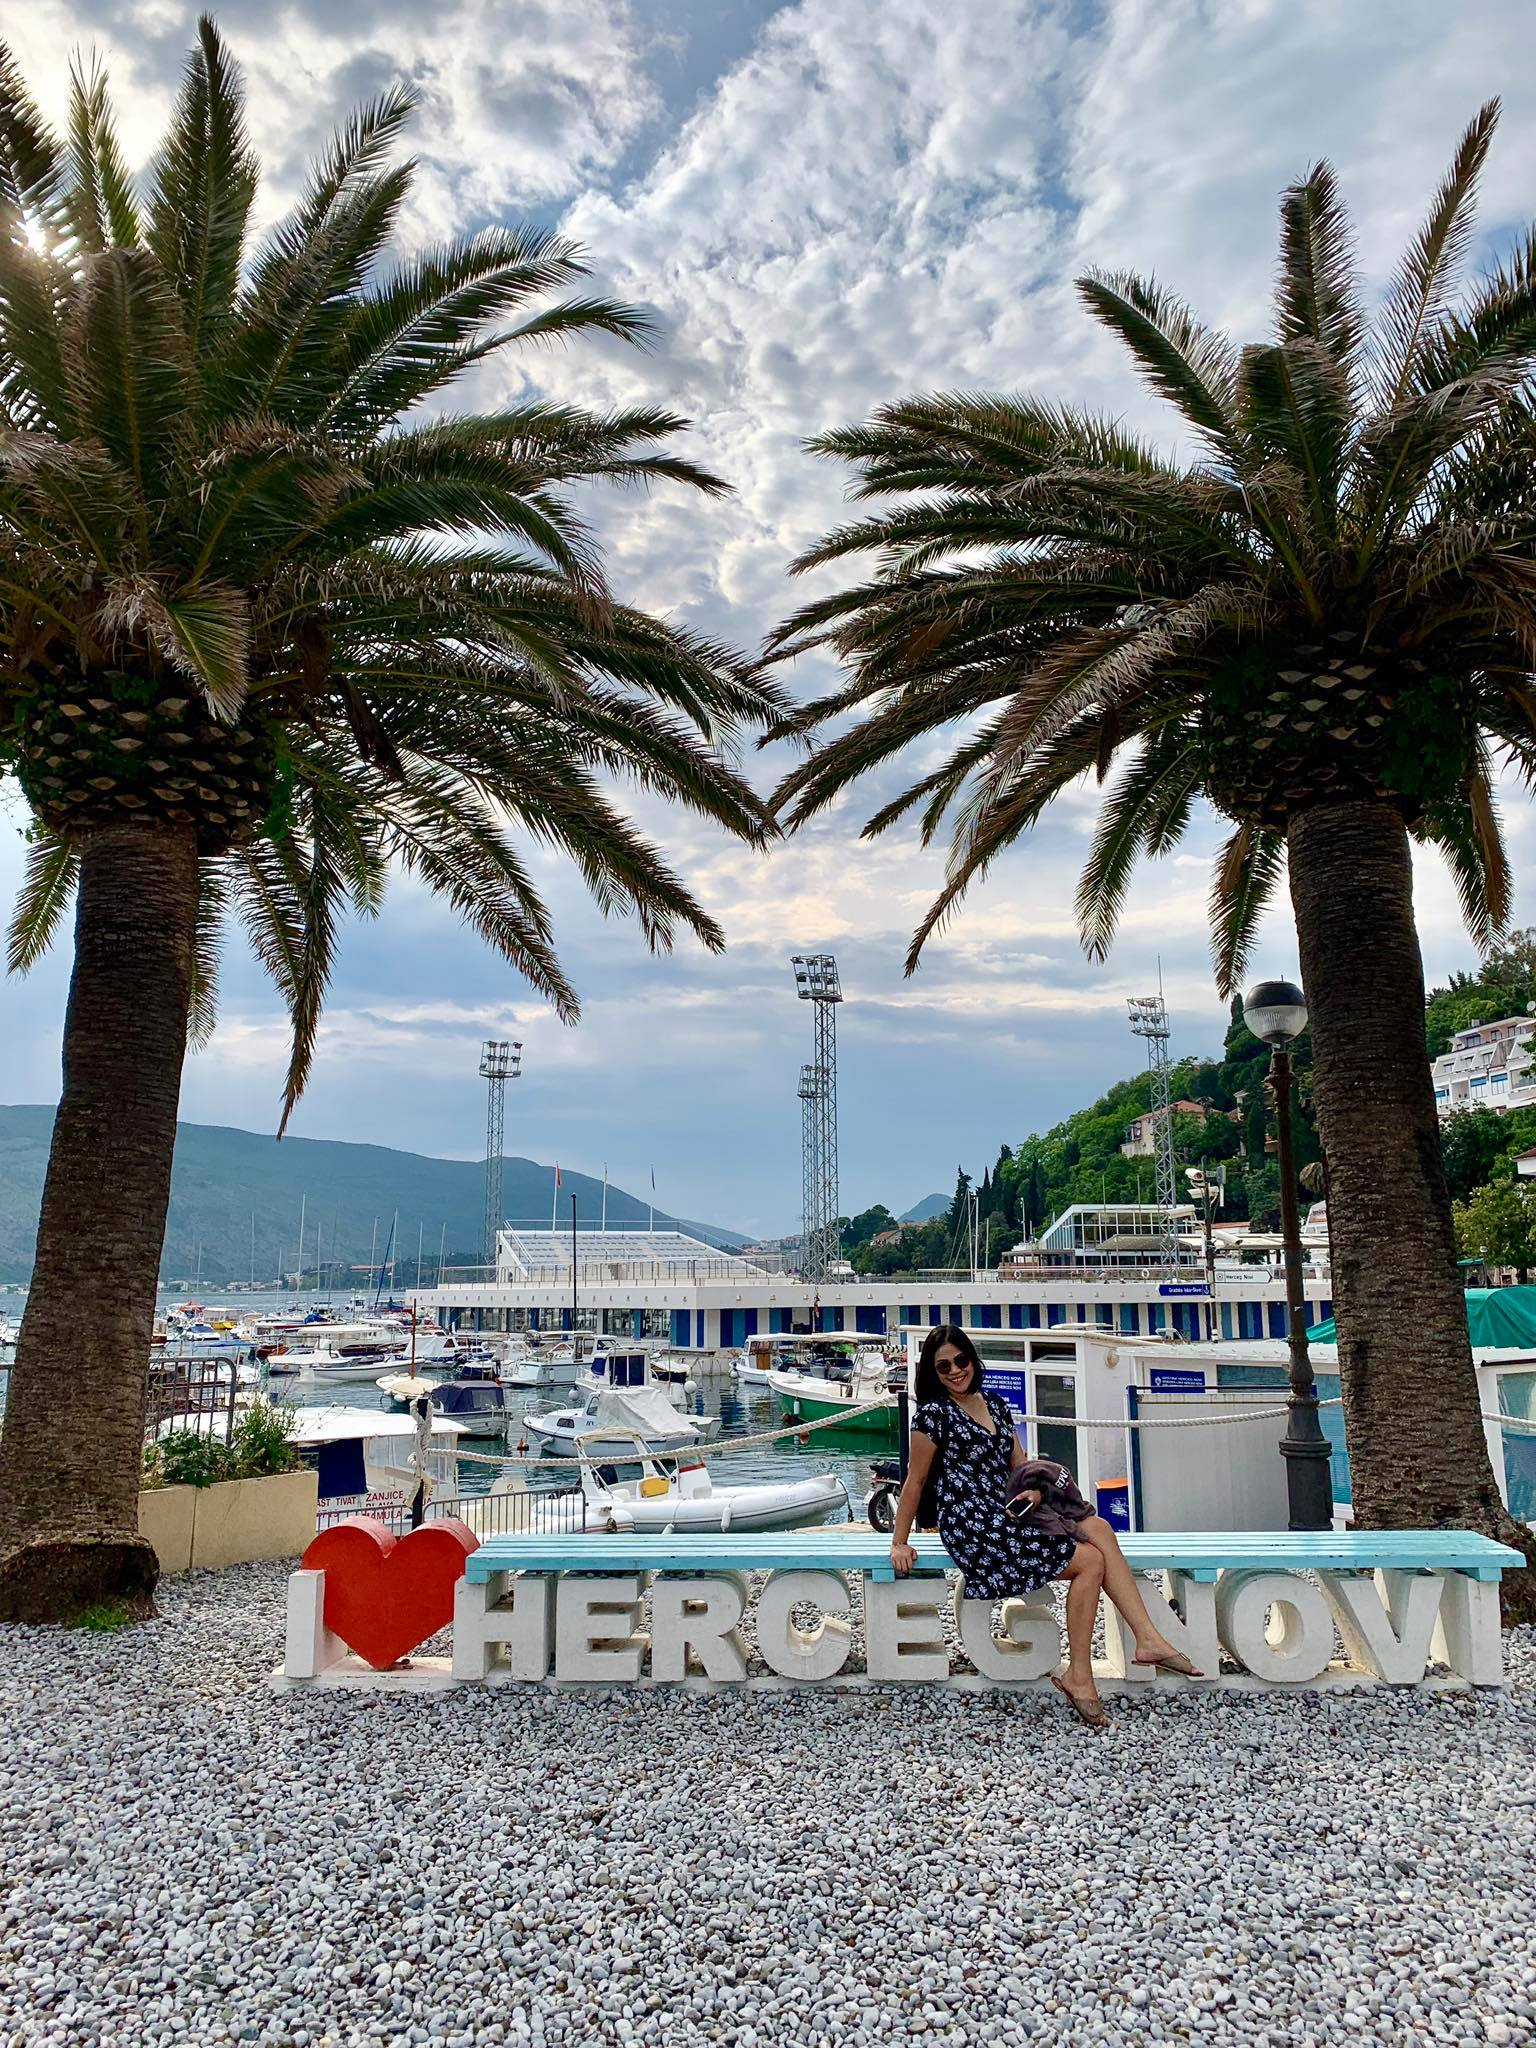 Expat Life in Montenegro Day 3 We have our first visitor already in our new home here in Herceg Novi20.jpg